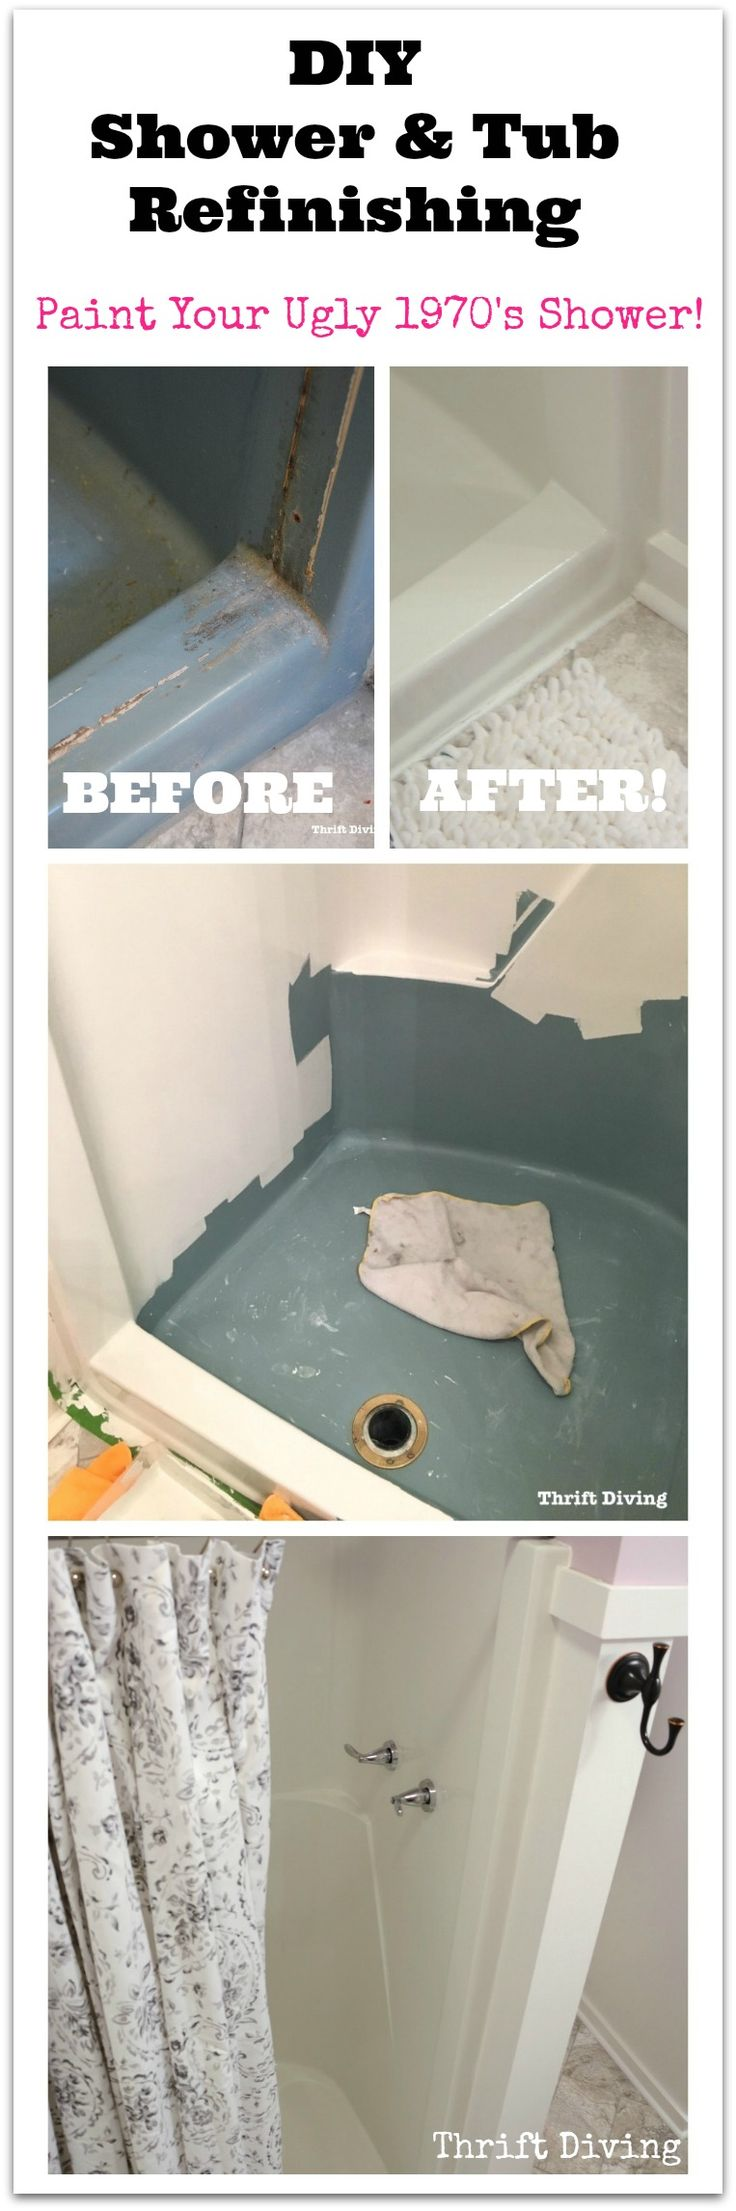 Cute Painting A Bathtub Small Bathtub Restoration Companies Clean Can A Bathtub Be Painted Can You Paint A Porcelain Bathtub Old Shower Refinishing Cost GrayRefinish Clawfoot Tub Cost Best 25  Painted Bathtub Ideas On Pinterest | Painting Bathtub ..